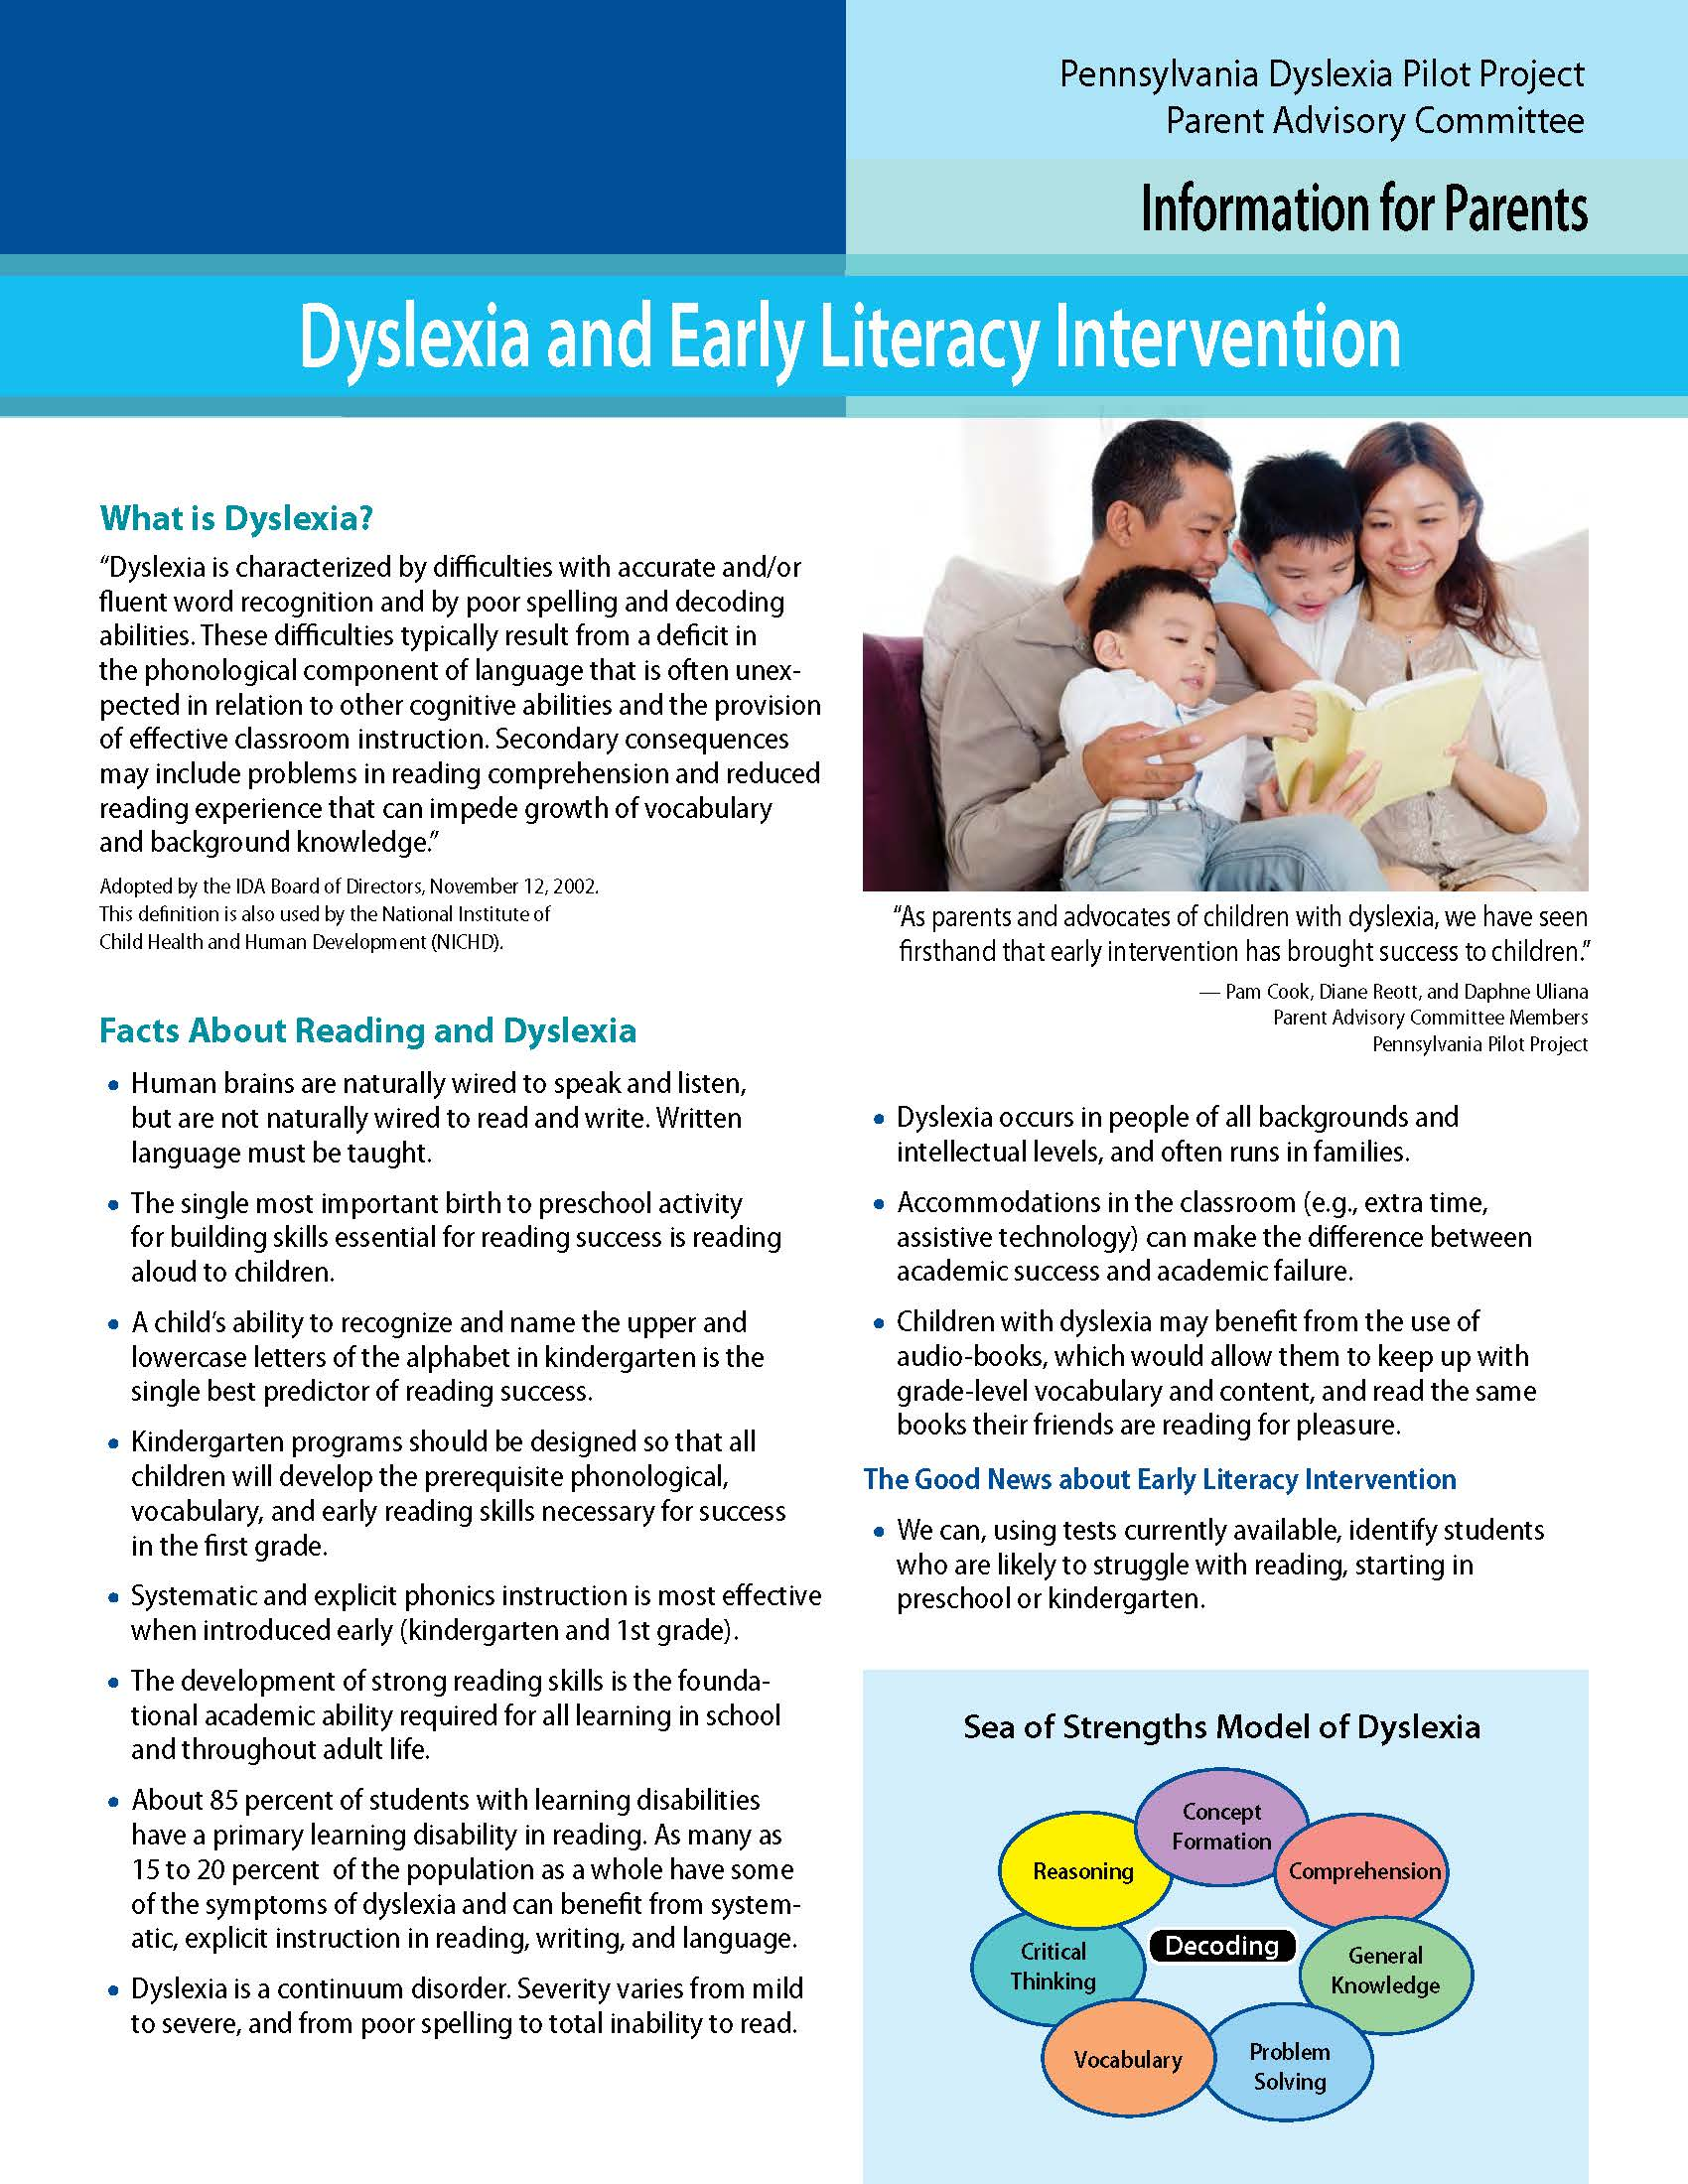 Dyslexia and Early Literacy Intervention